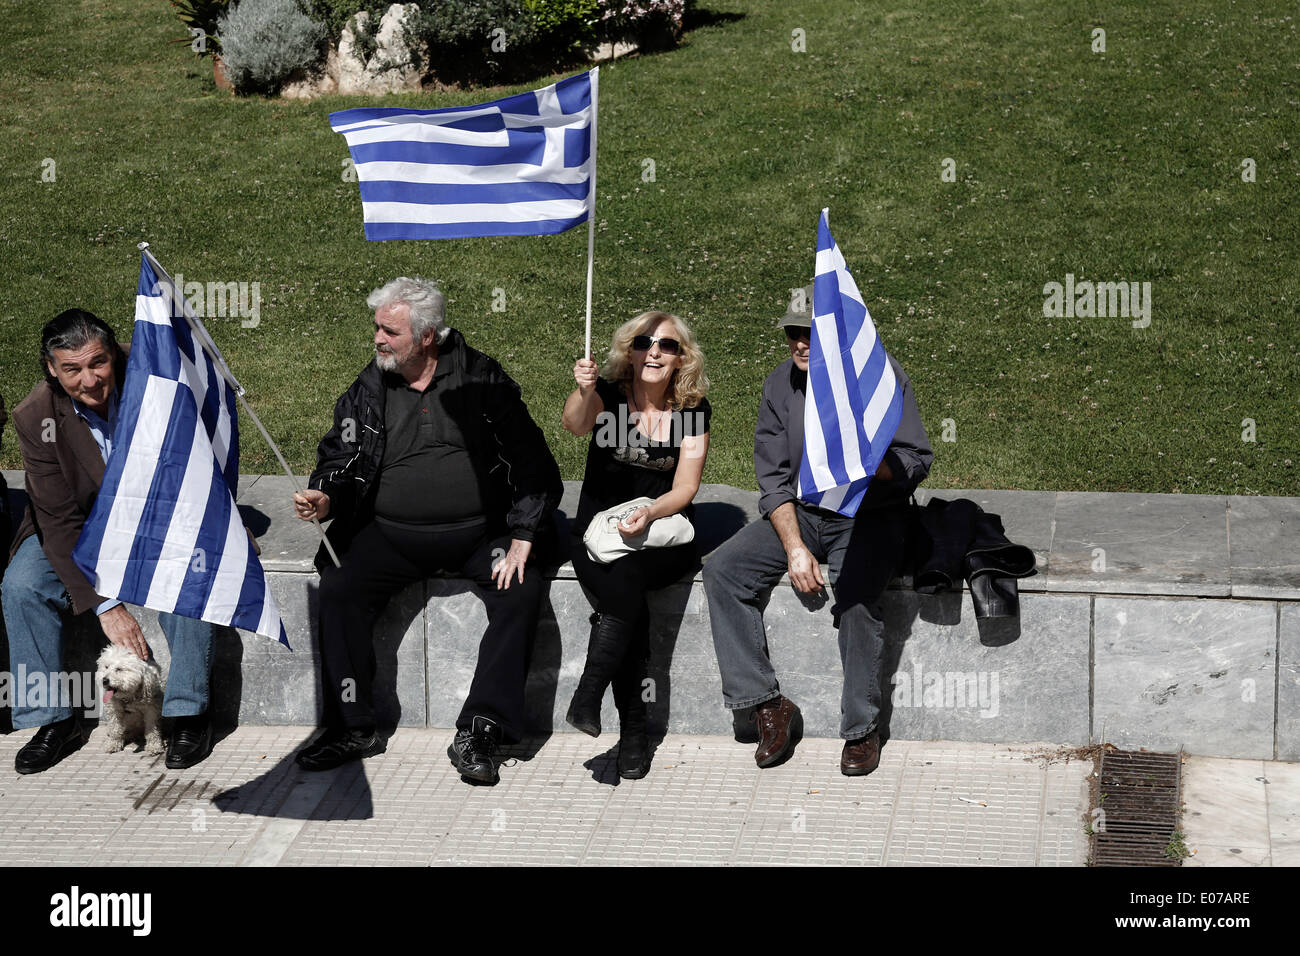 Athens, Greece. 5th May 2014. Golden Dawn supporters gathered outside the Athens Supreme Court. Golden Dawn MPs were invited by the Special Appellate magistrate, to account for the category of membership and directing a criminal organization. Athens, Greece on May 5, 2014. Credit:  Konstantinos Tsakalidis/Alamy Live News - Stock Image